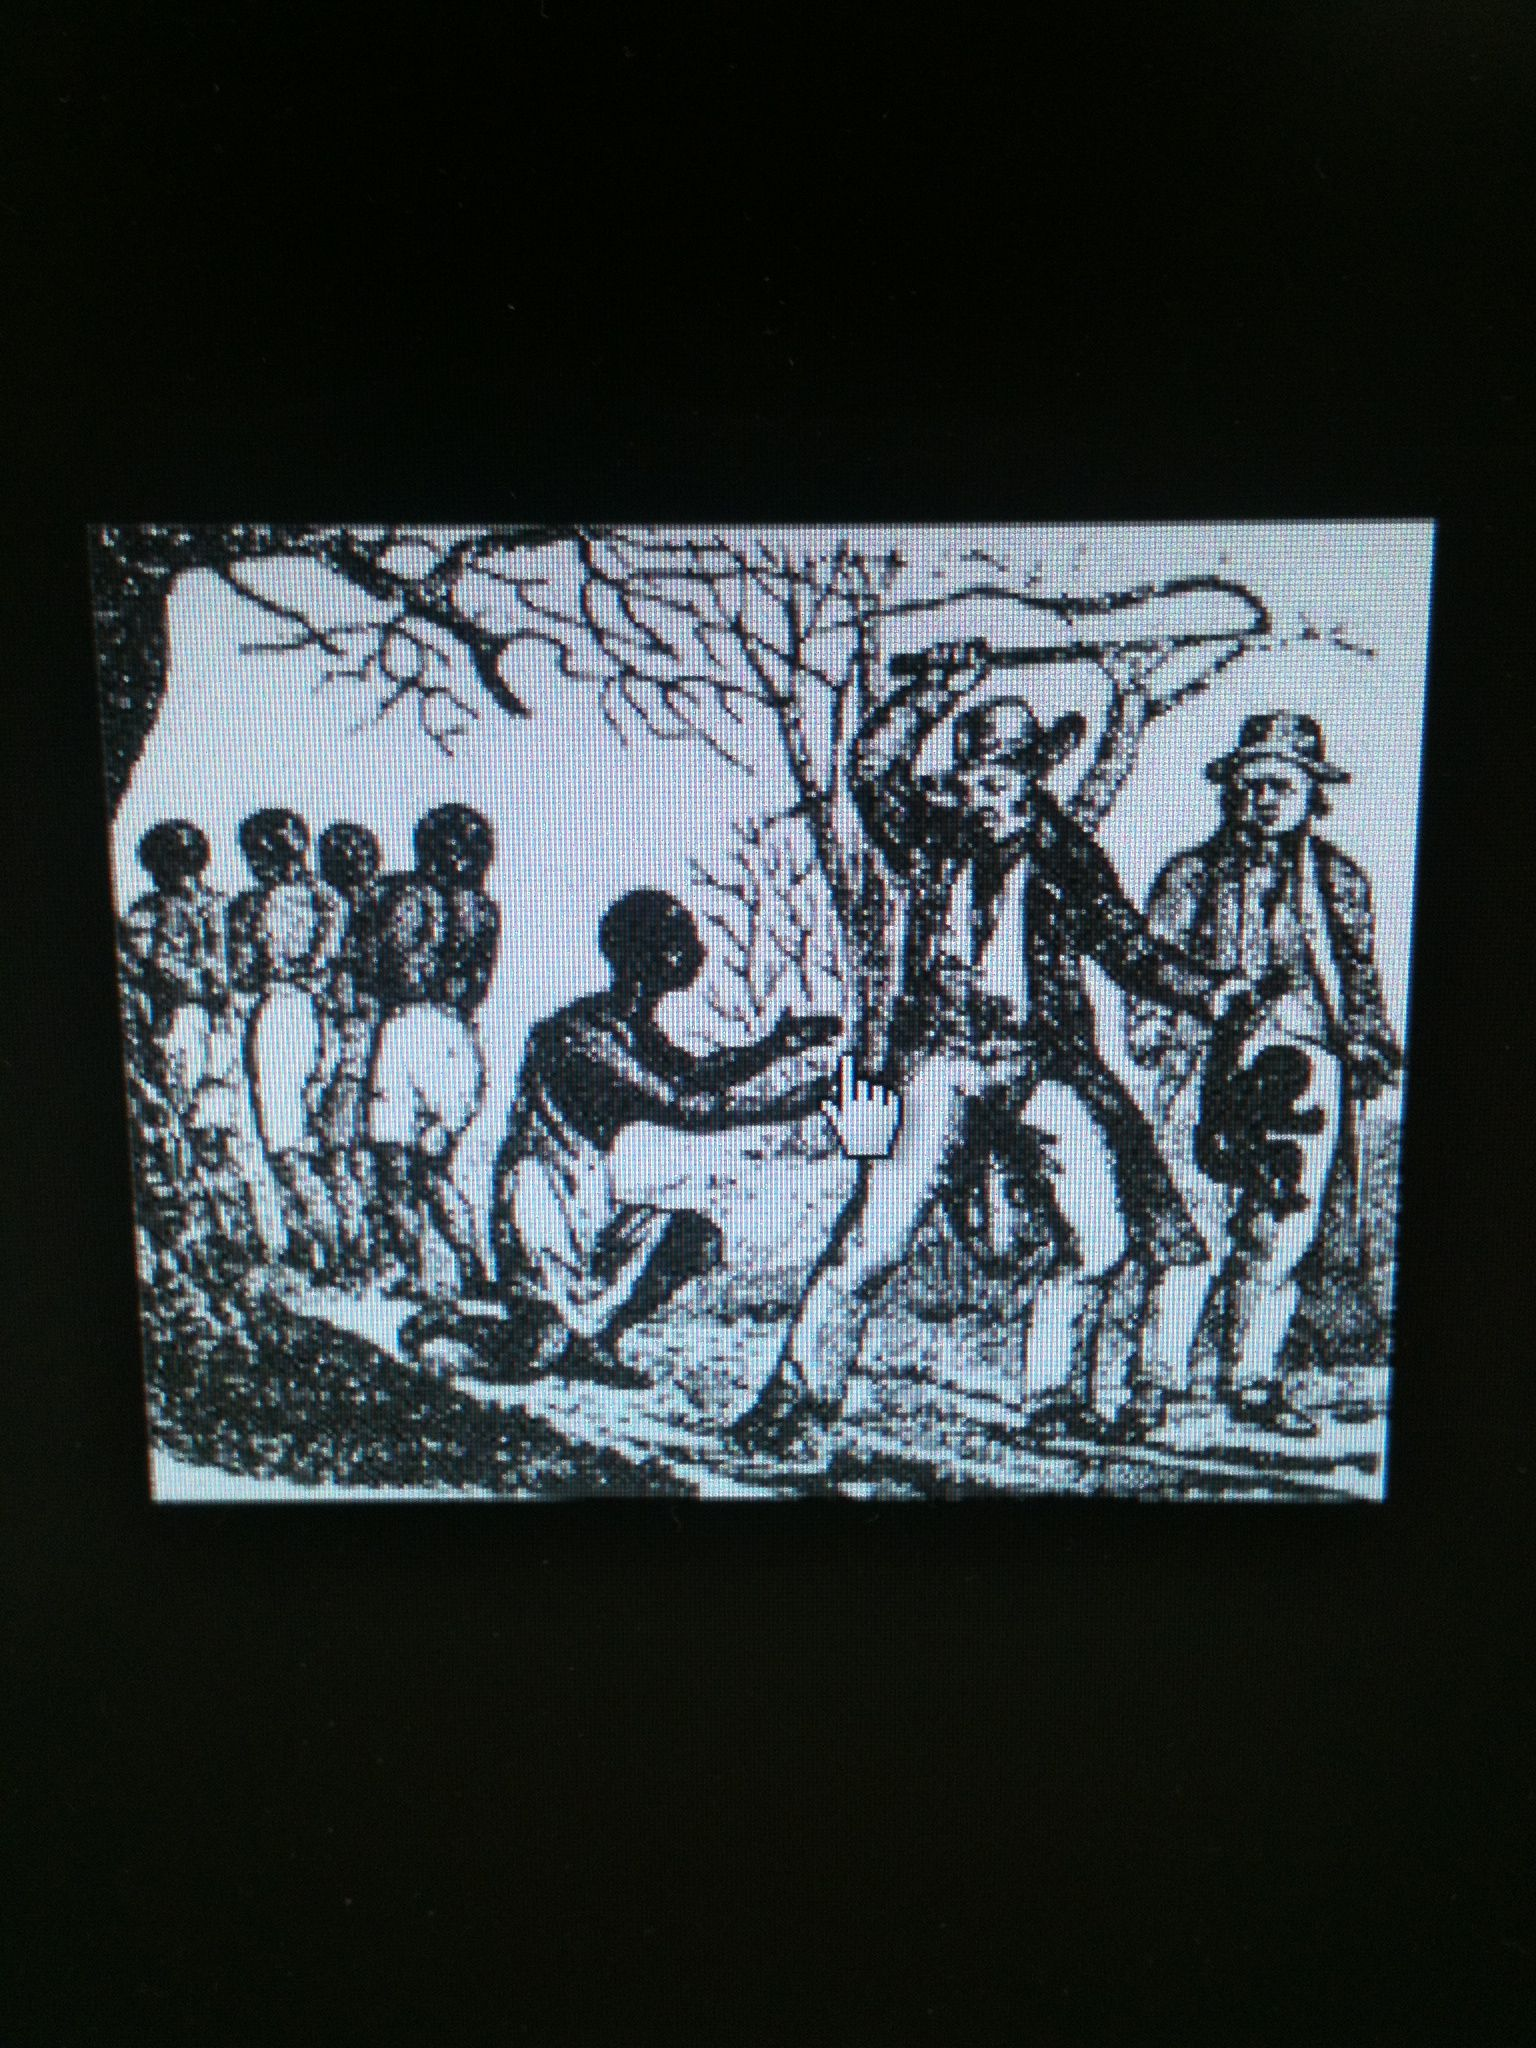 Pin on z.APUSH ch.10 The South and Slavery, 1790s-1850s